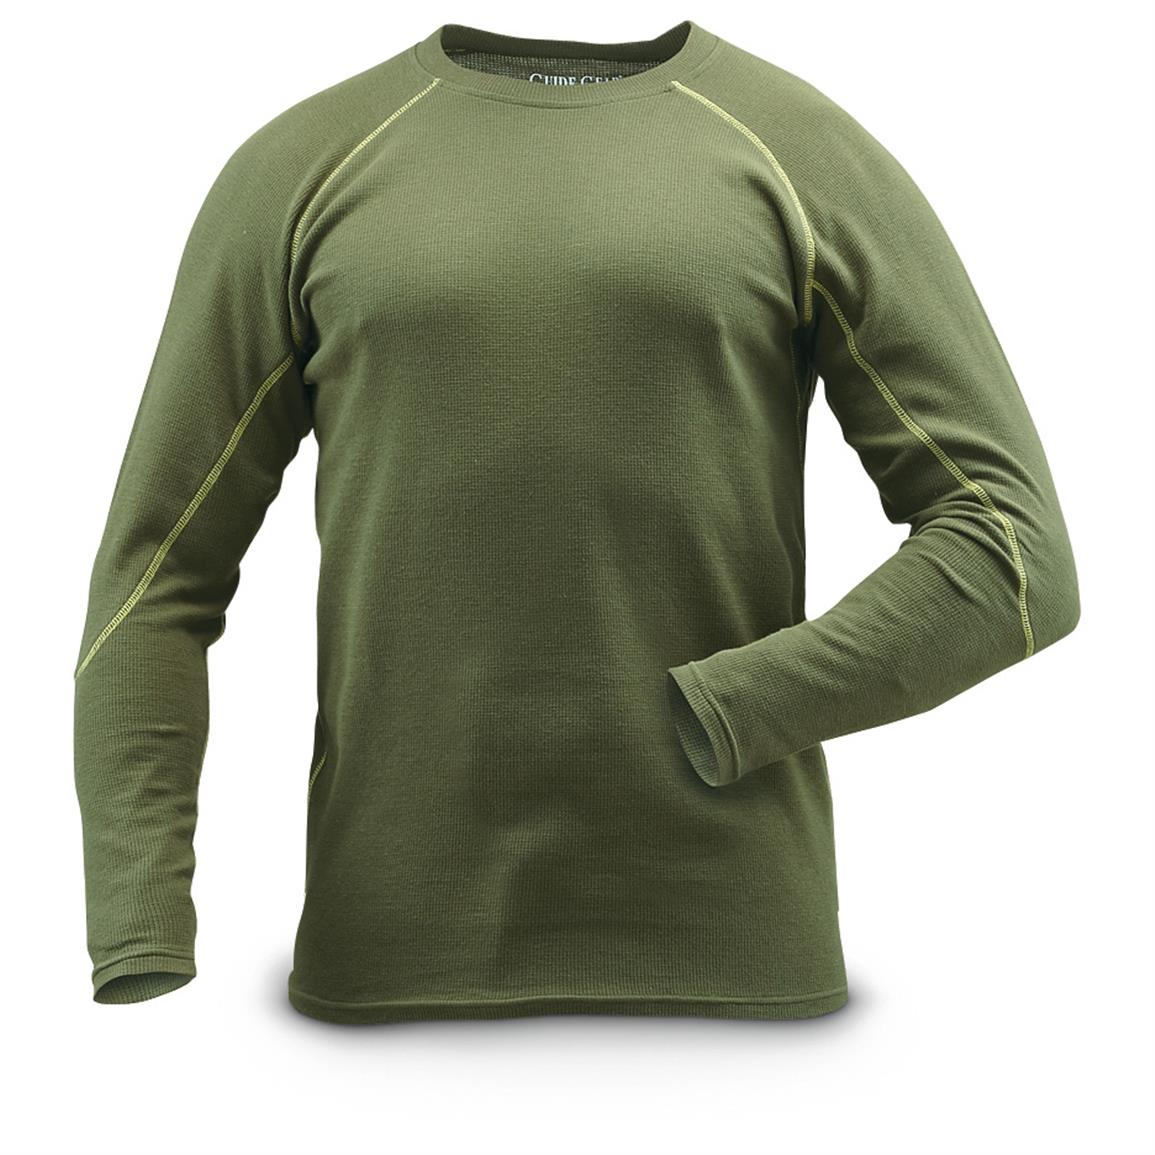 Guide Gear Men's Midweight Thermal Base Layer Shirts, 2 Pack, Olive